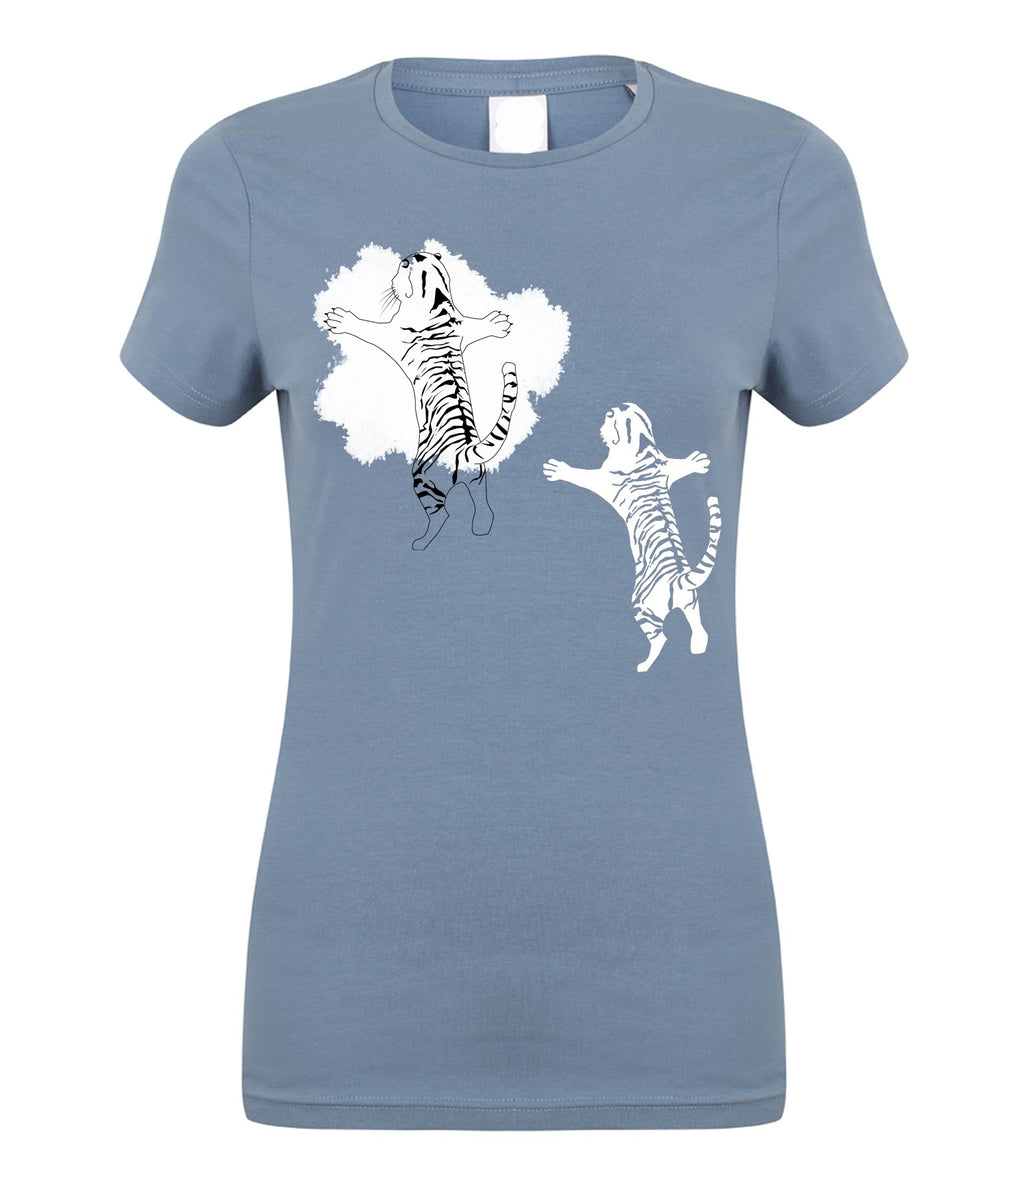 T-shirts - Double Tiger Women T-shirt, Stone Blue